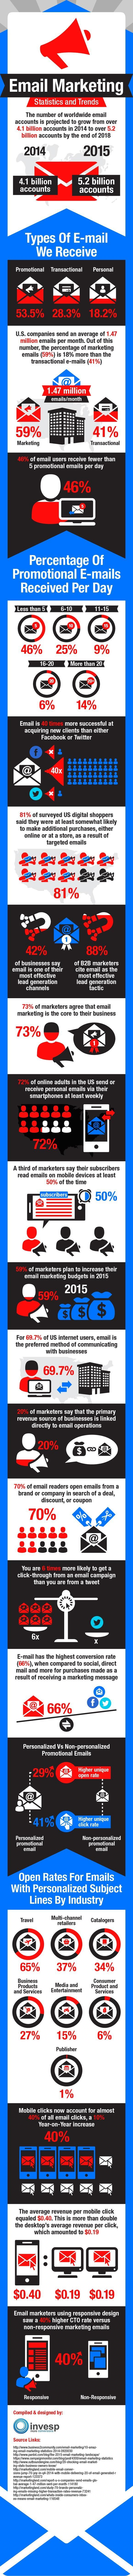 What You Need to Know About Email Marketing: Statistics and Trends [Infographic] - @b2community